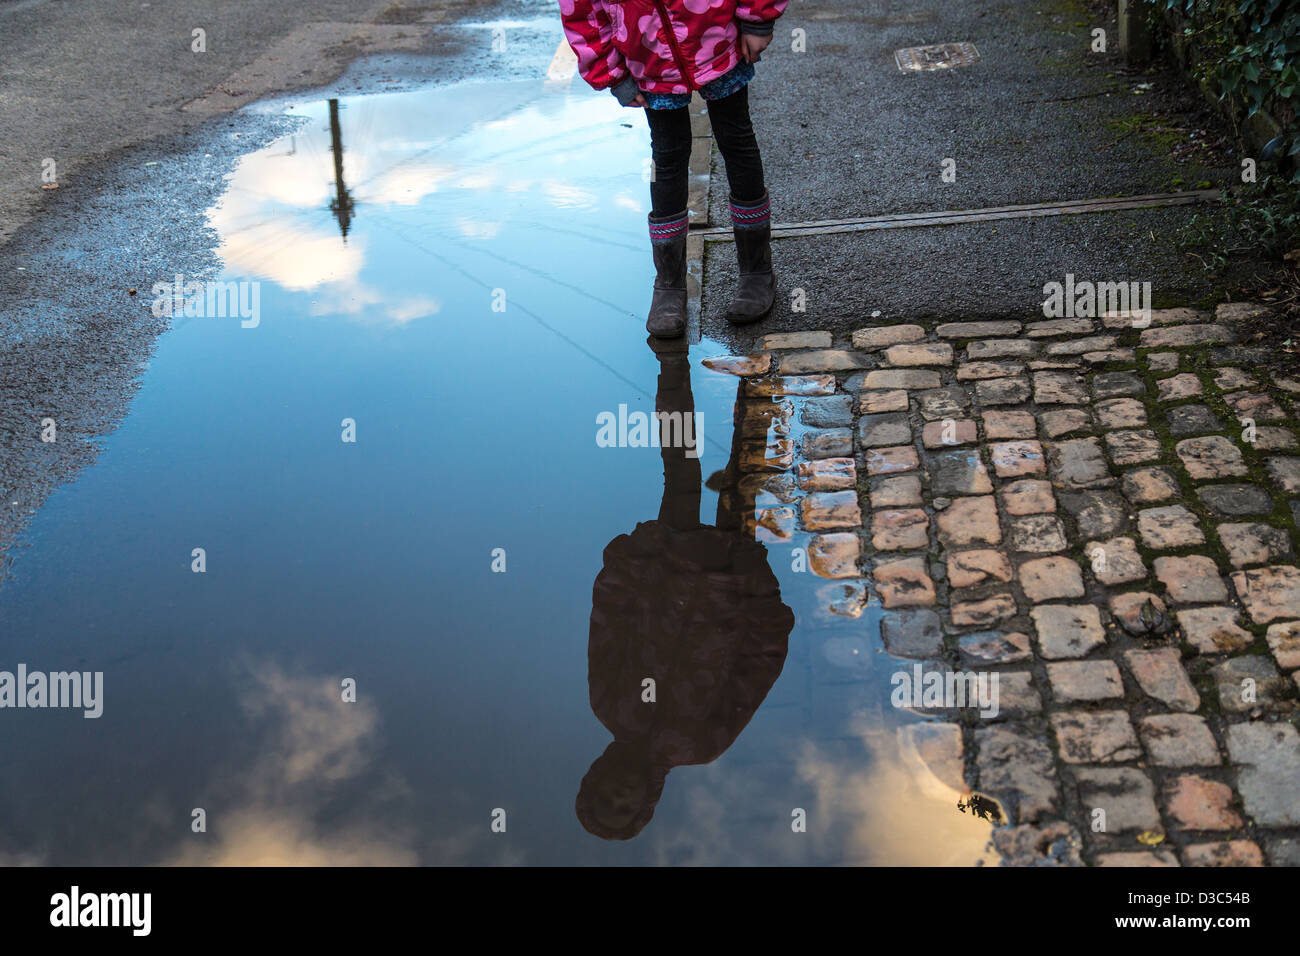 Girl stares at her reflection in a Puddle - Stock Image